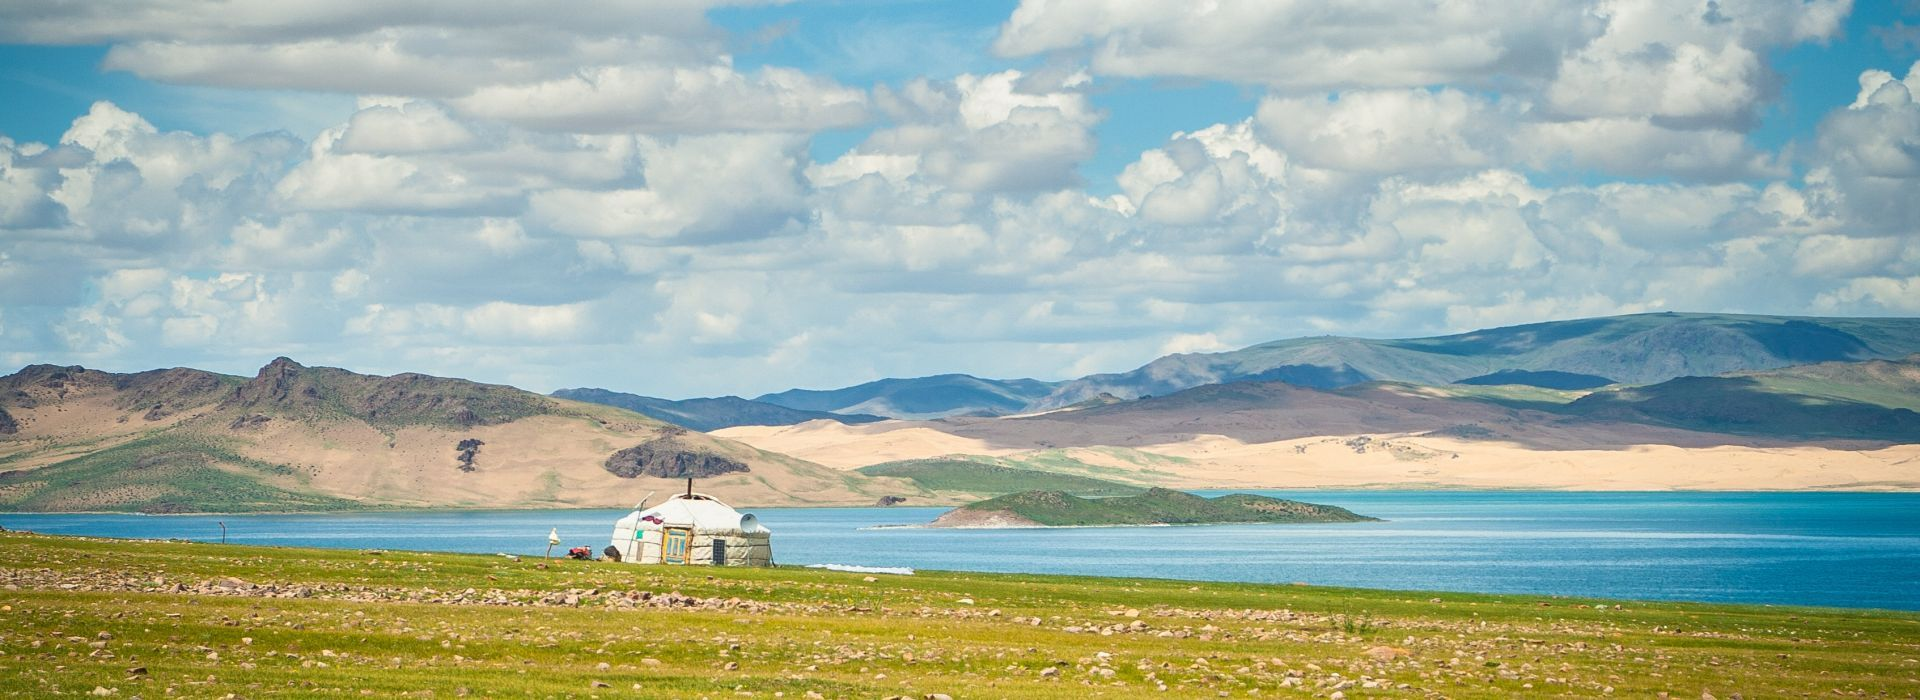 Natural landmarks sightseeing Tours in Mongolia